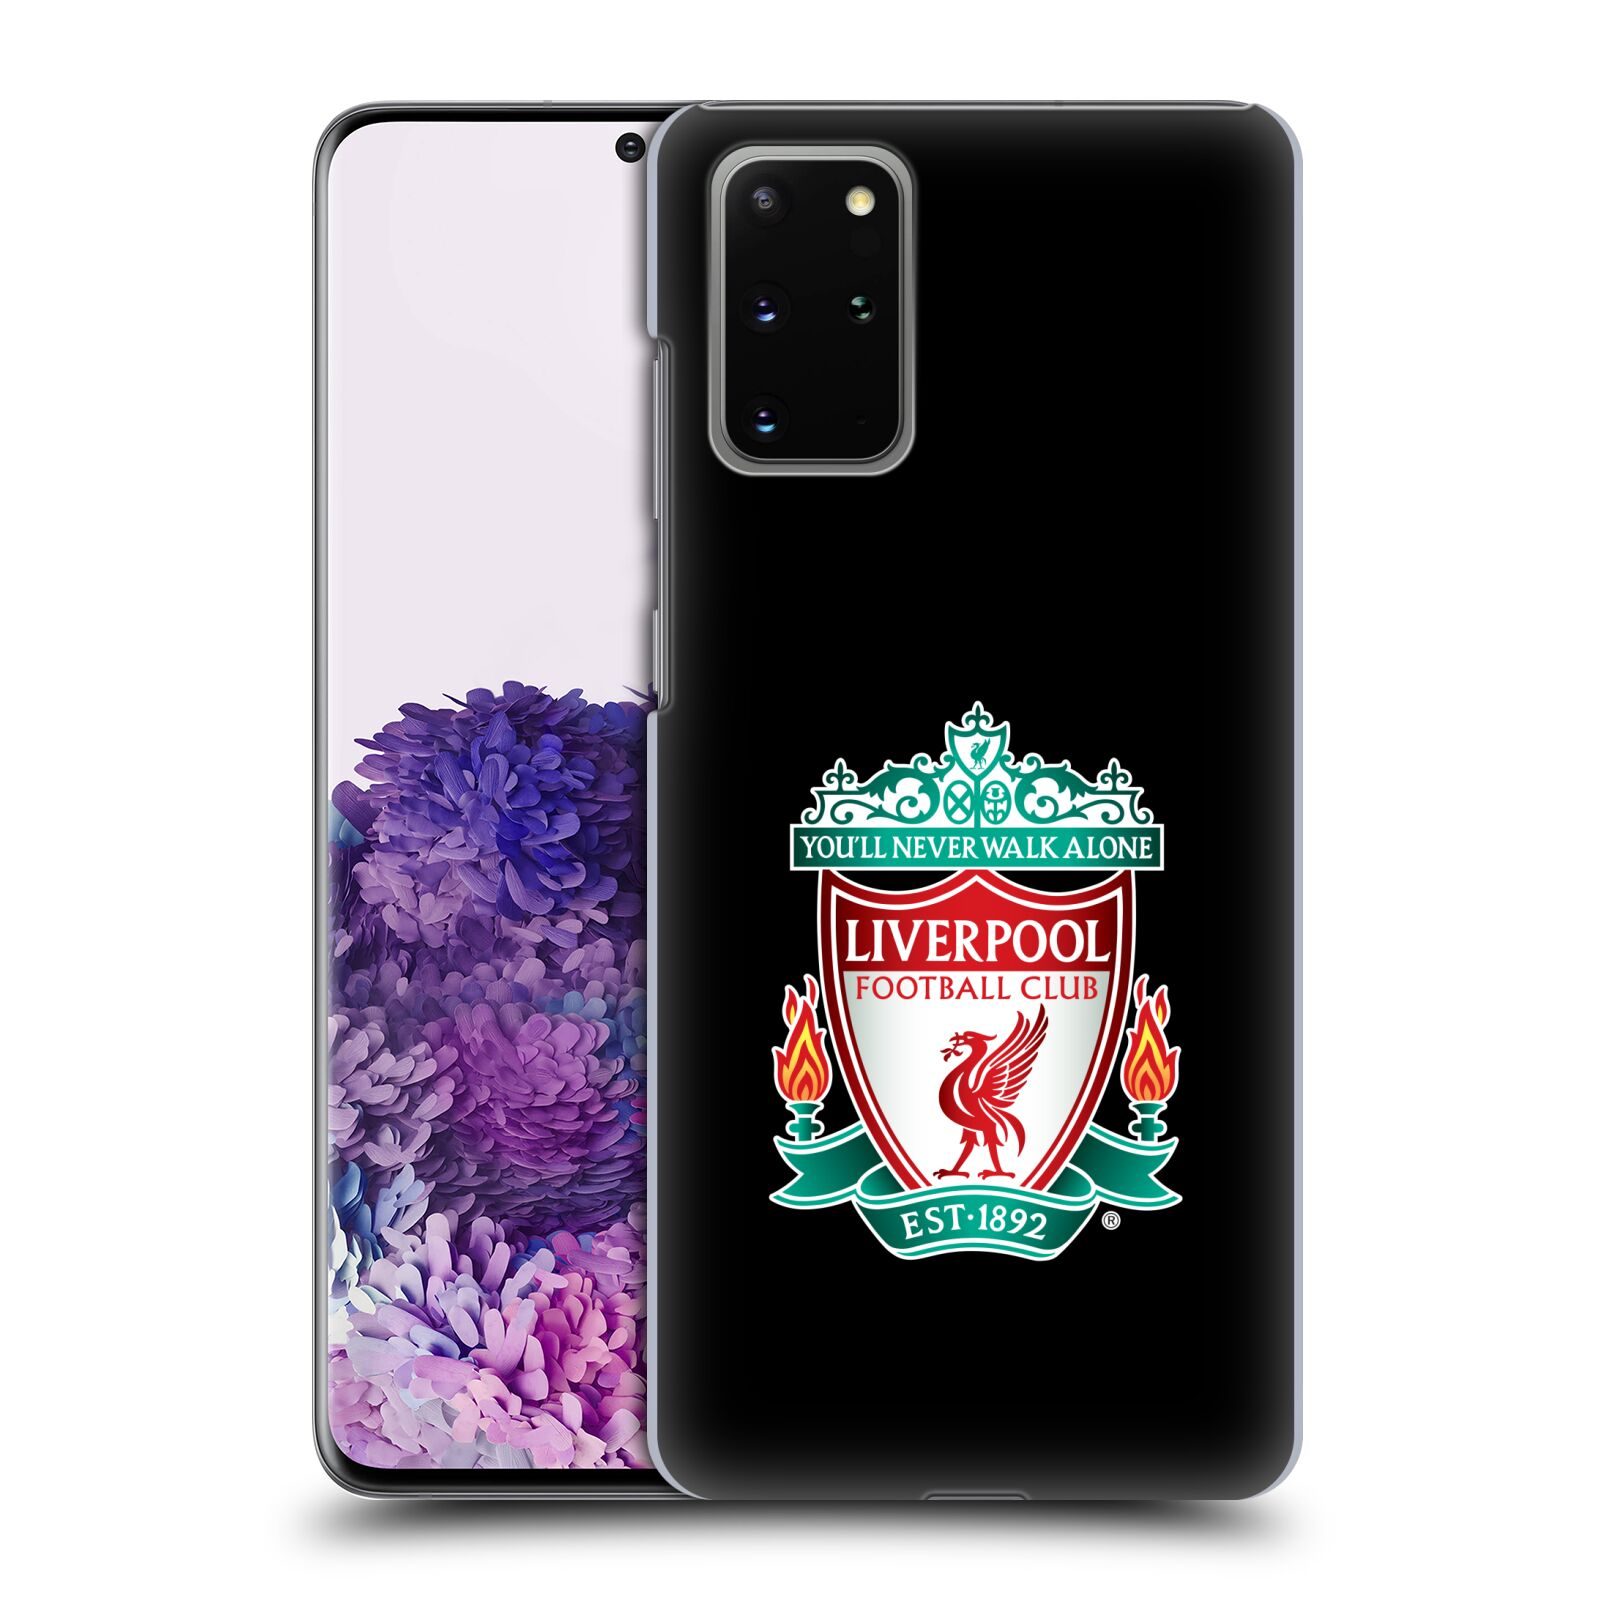 Plastové pouzdro na mobil Samsung Galaxy S20 Plus - Head Case - ZNAK LIVERPOOL FC OFFICIAL BLACK